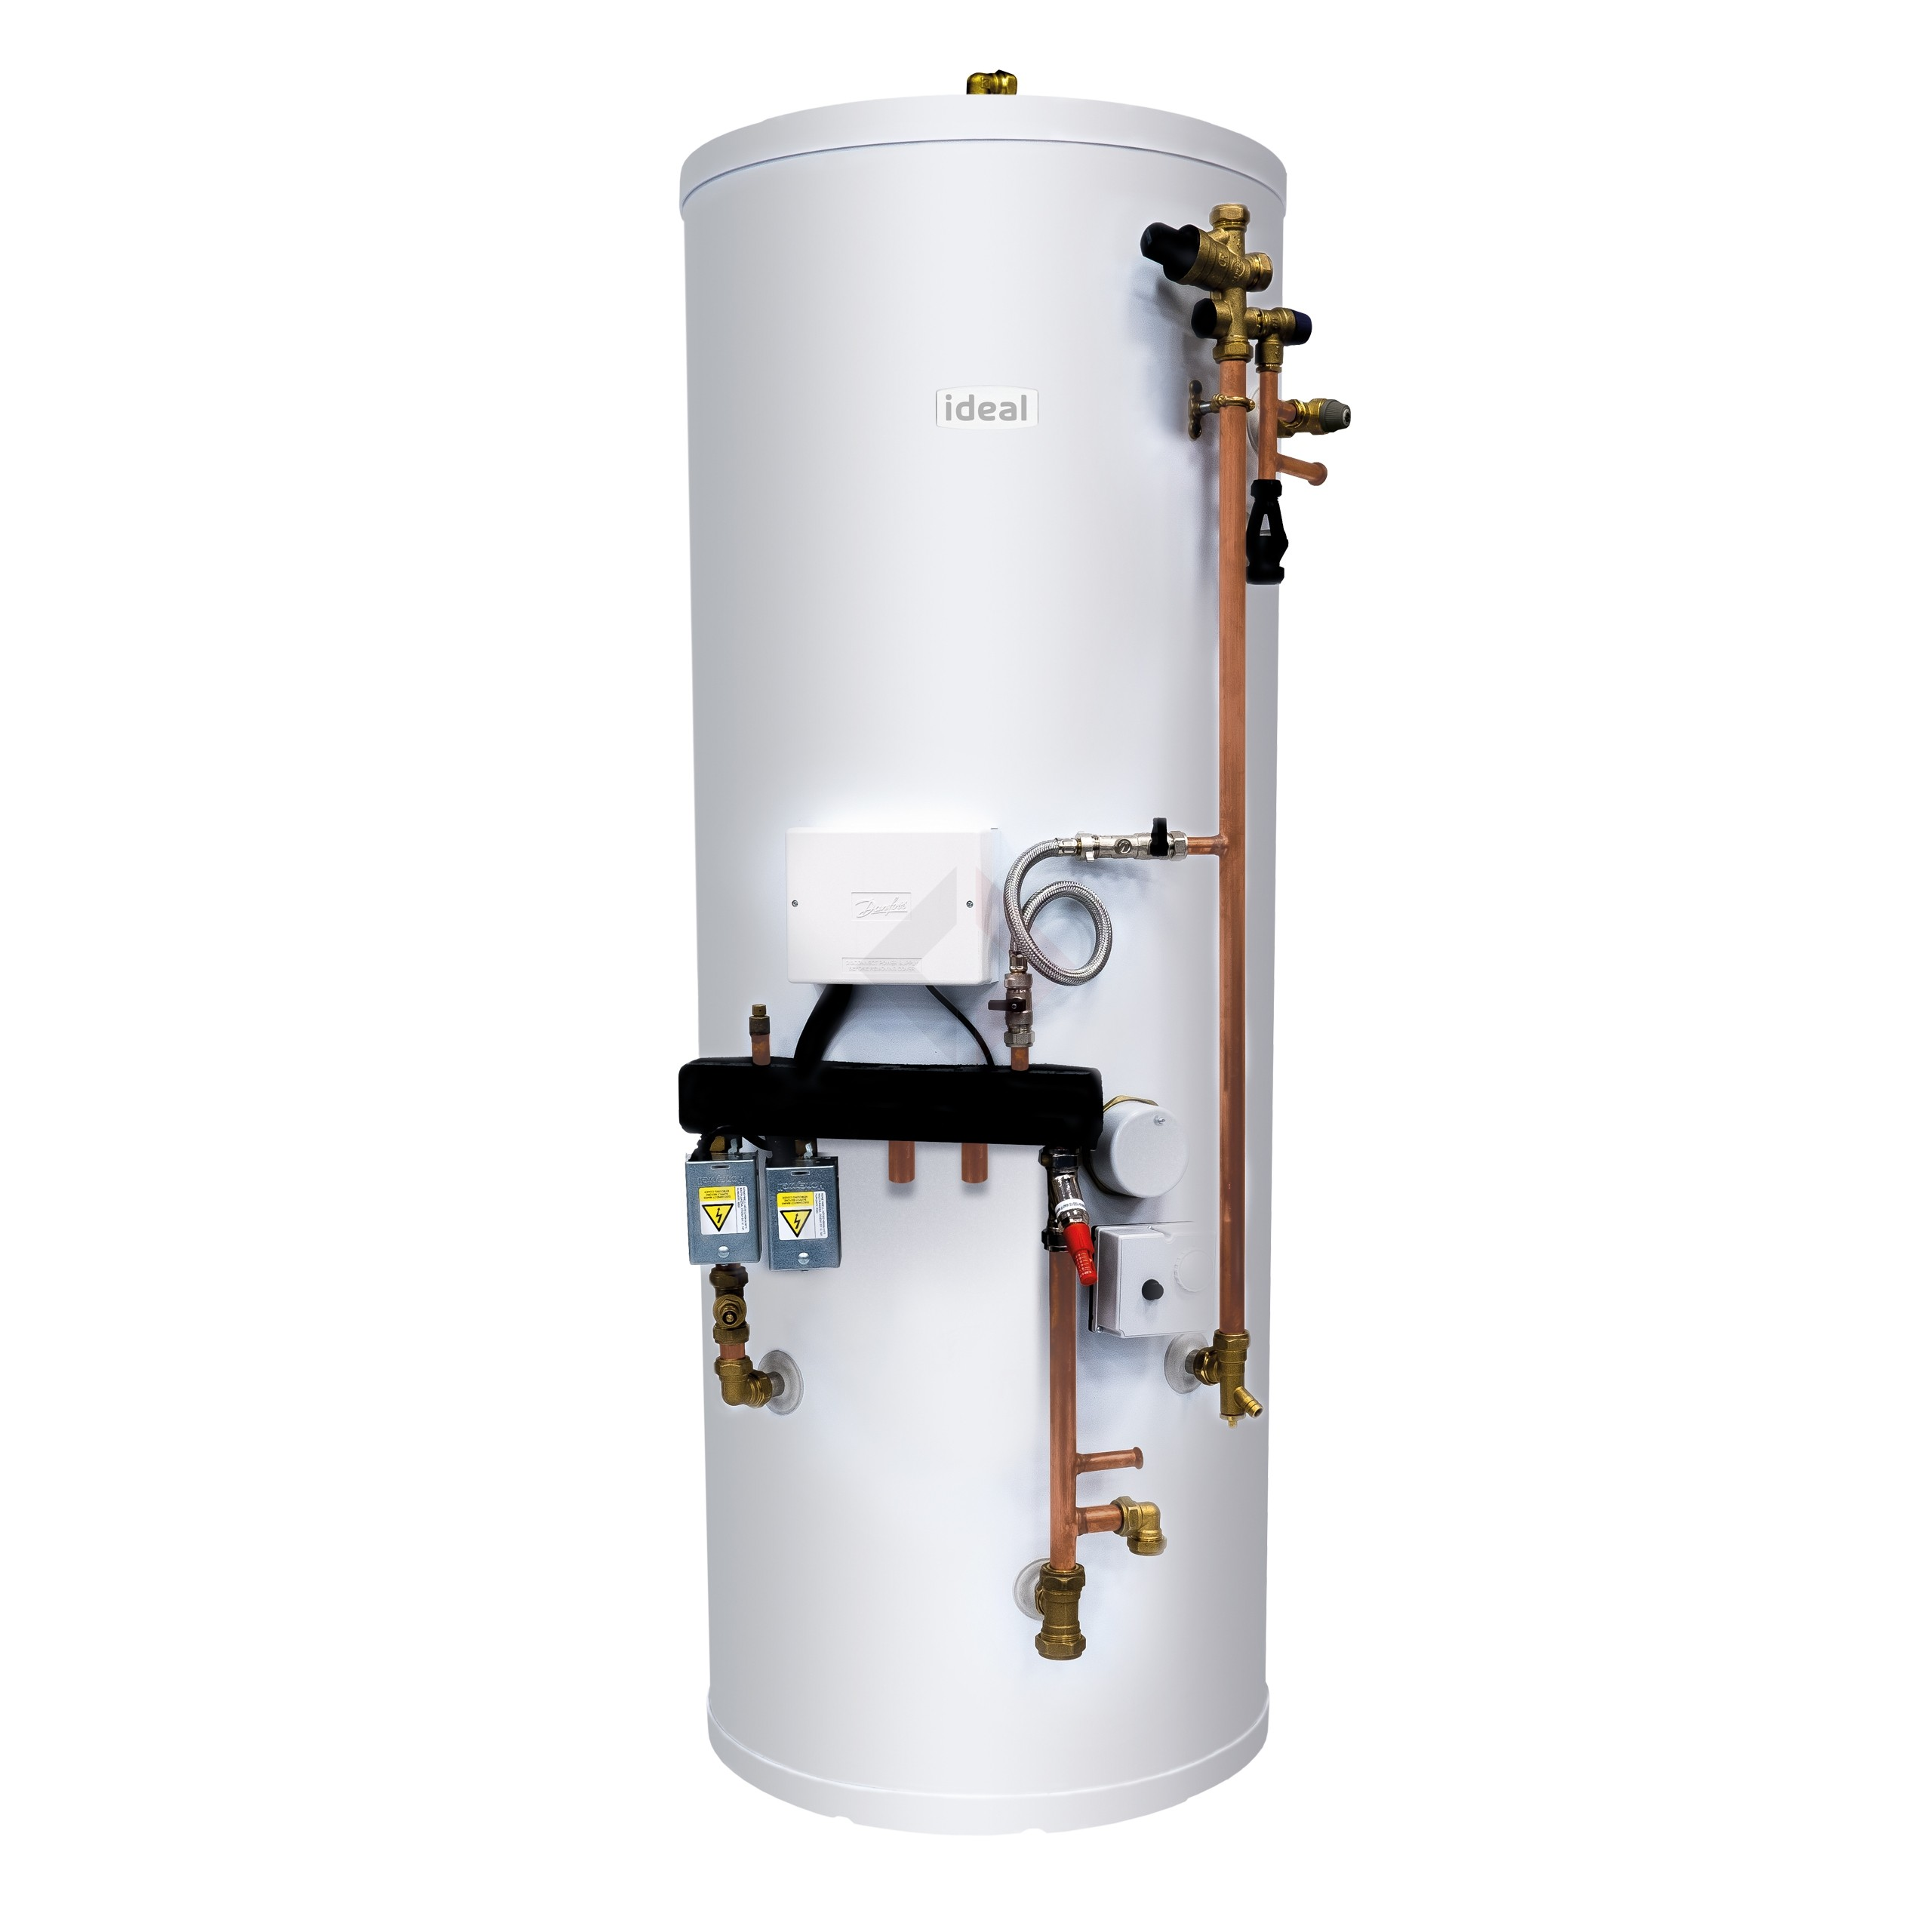 Ideal 210L System Ready Unvented Cylinder, Easy Pack